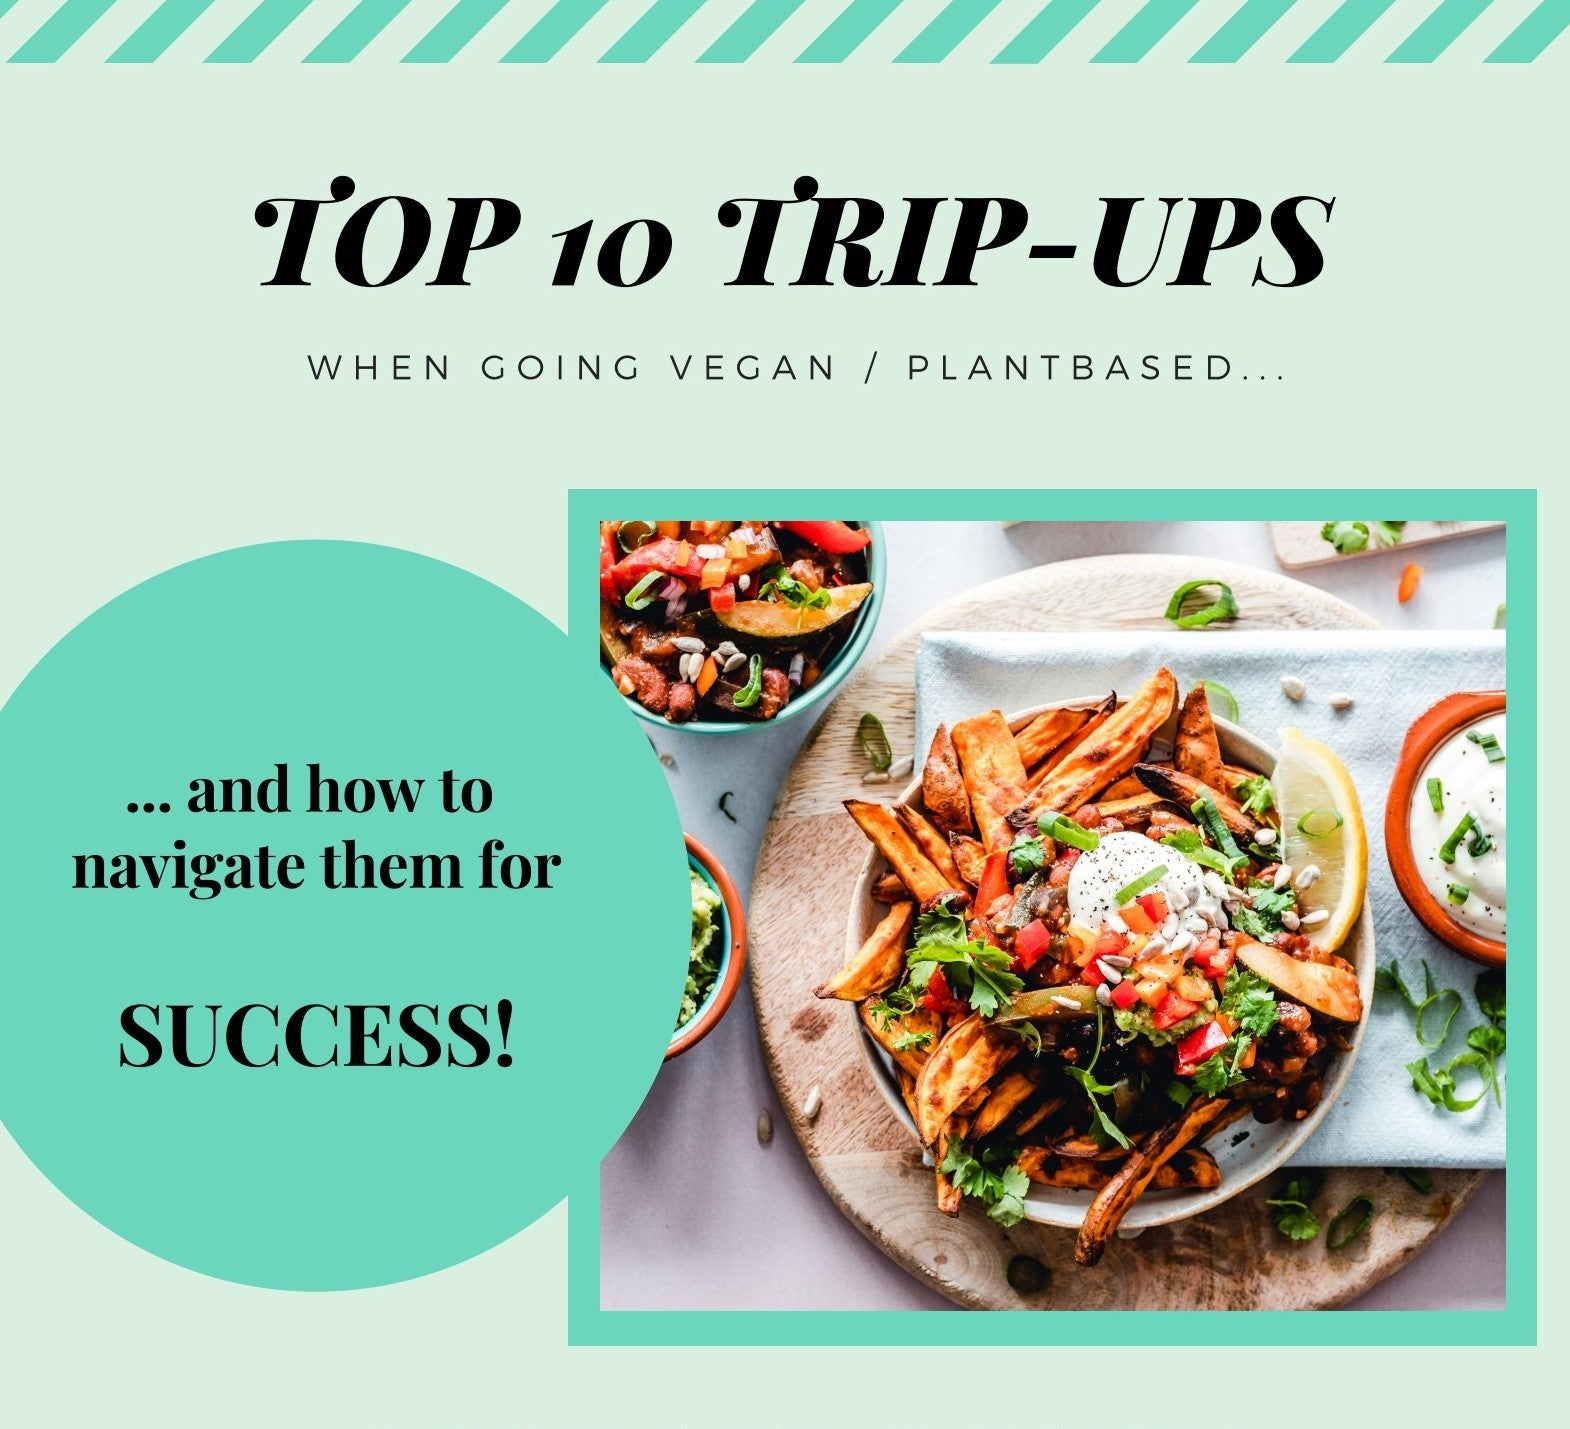 The TOP 10 TRIP-UPS to going vegan/plantbased... and how to navigate them for SUCCESS!